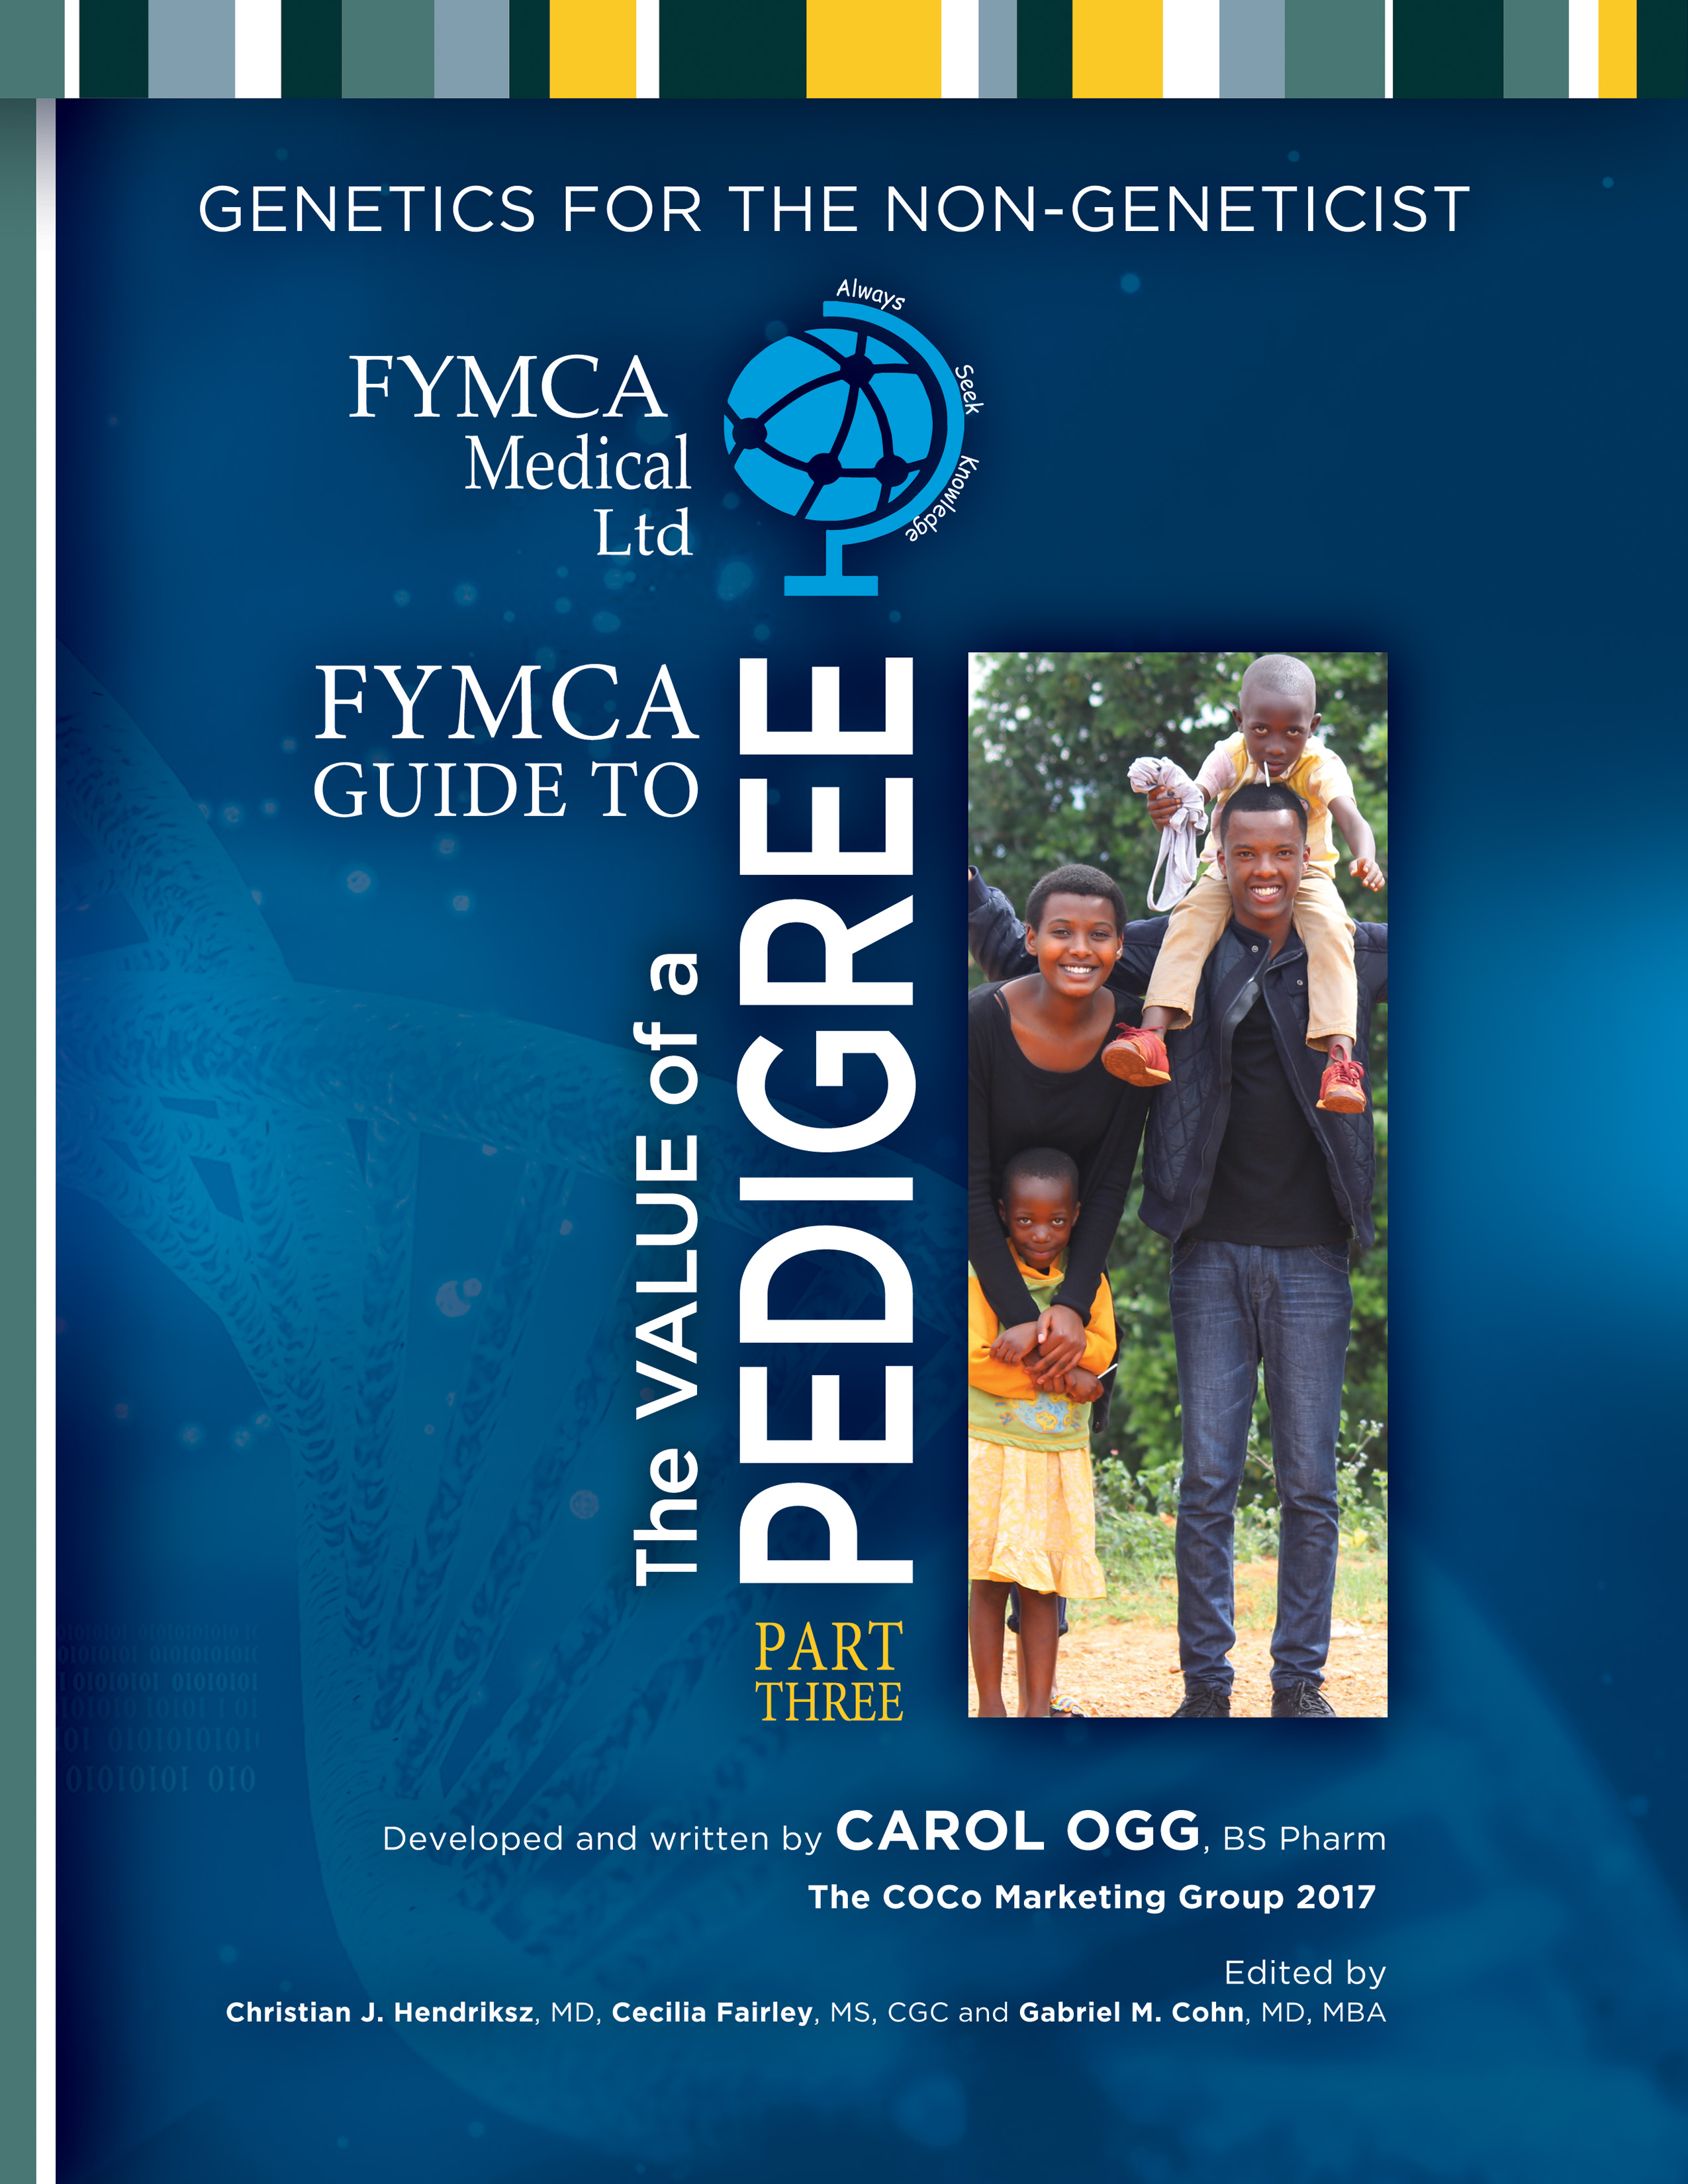 FYMCA: Guide to the Value of a Pedigree (Part 3) E-Book